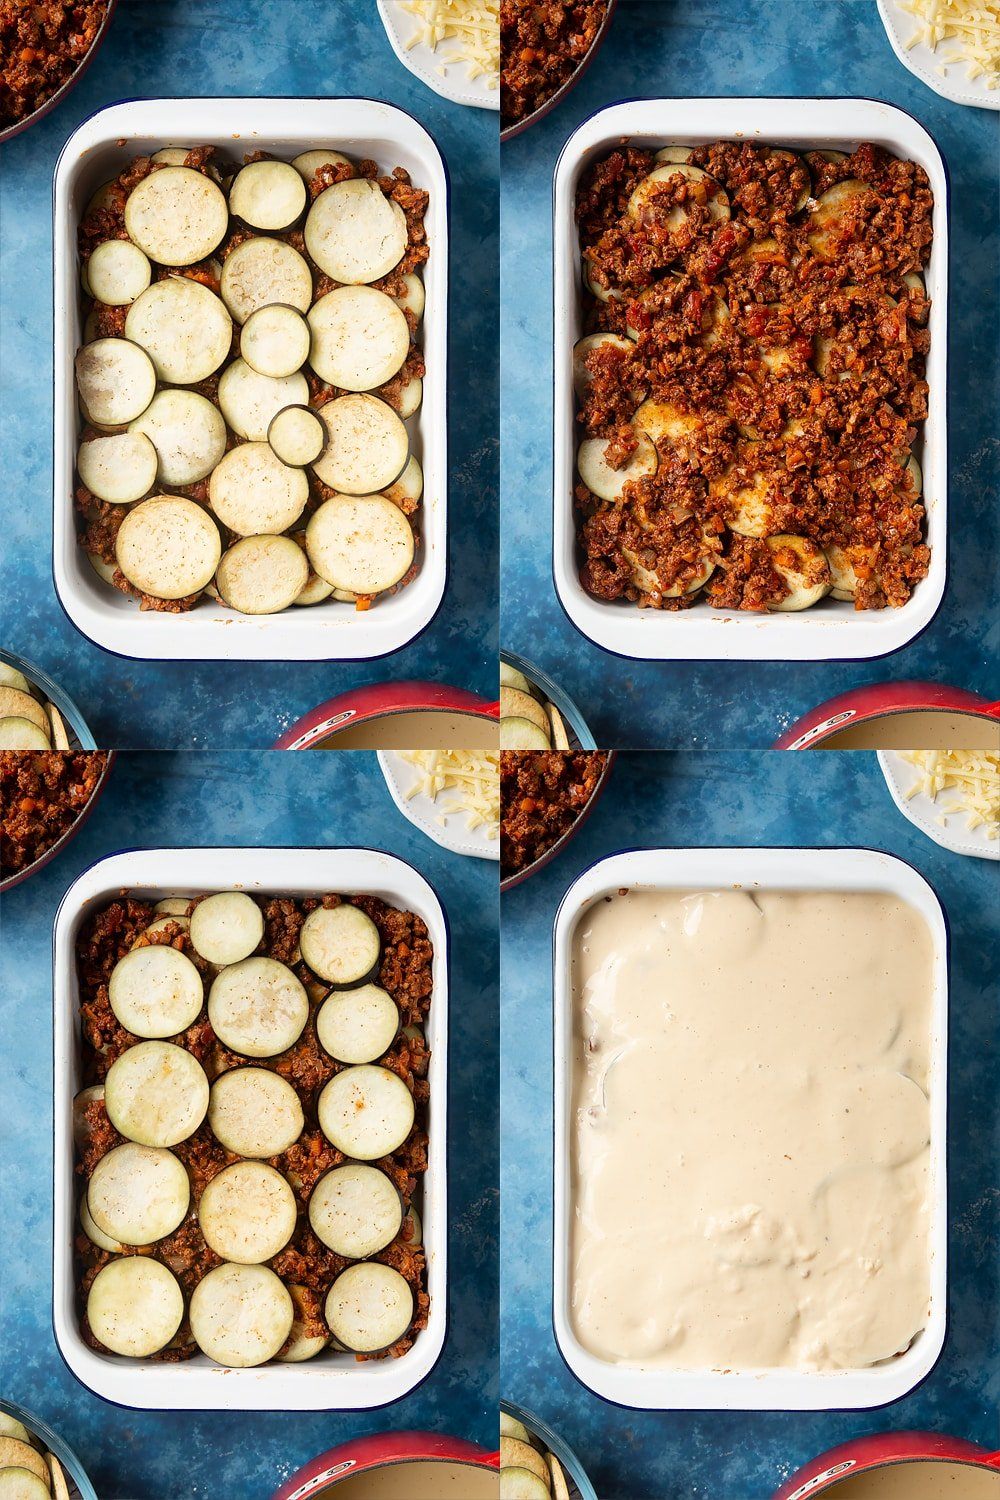 collage of four photos of overhead shots of aubergine on top of mince on a large white roasting tray, mince on top of aubergine on a large white roasting tray, aubergine on top of mince on a large white roasting tra,y and quorn meat free mince moussaka covered with white sauce on a large white roasting tray